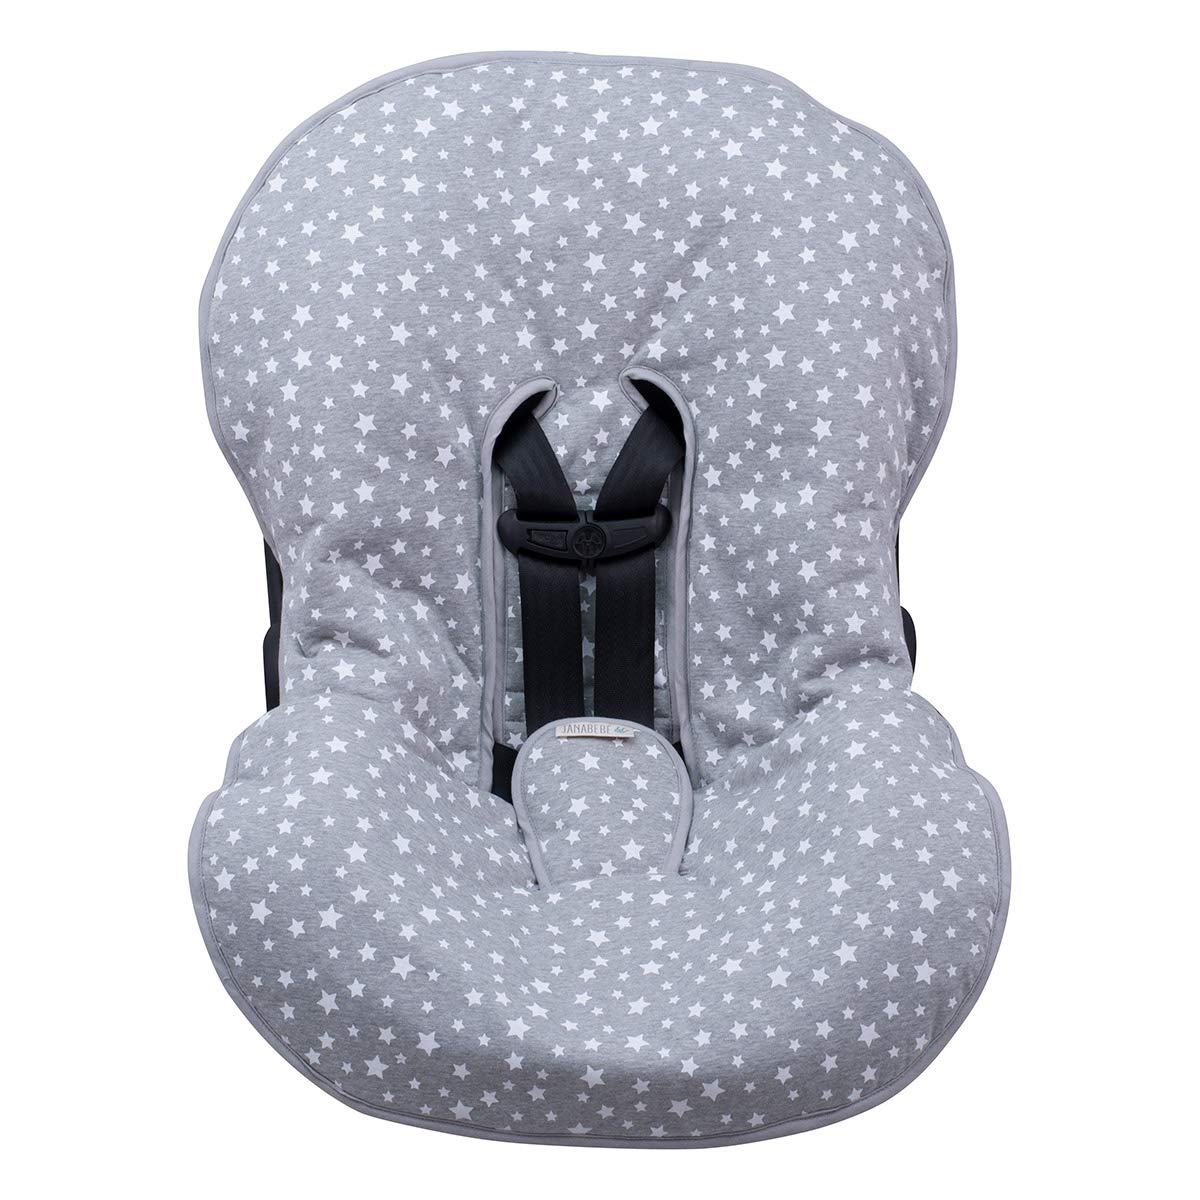 JANABEBÉ Universal Padded Cover Liner for Baby Carriers and CAR SEAT (Maxi COSI MICO, CHICCO, BRITAX, ETC) (White Star) by JANABEBE